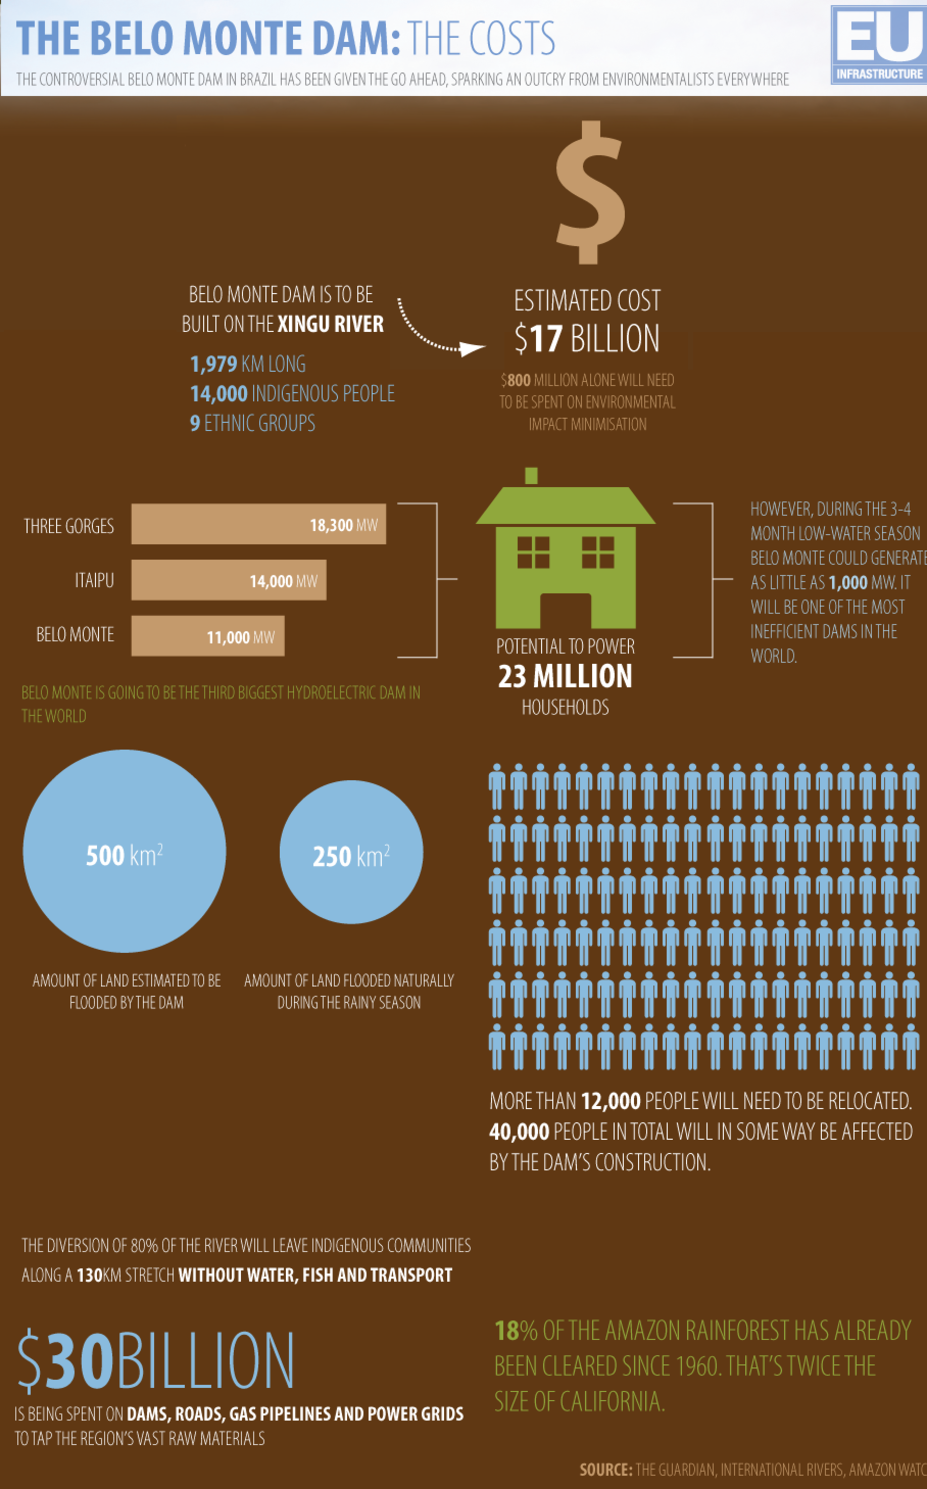 The Belo Monte Dam - the costs